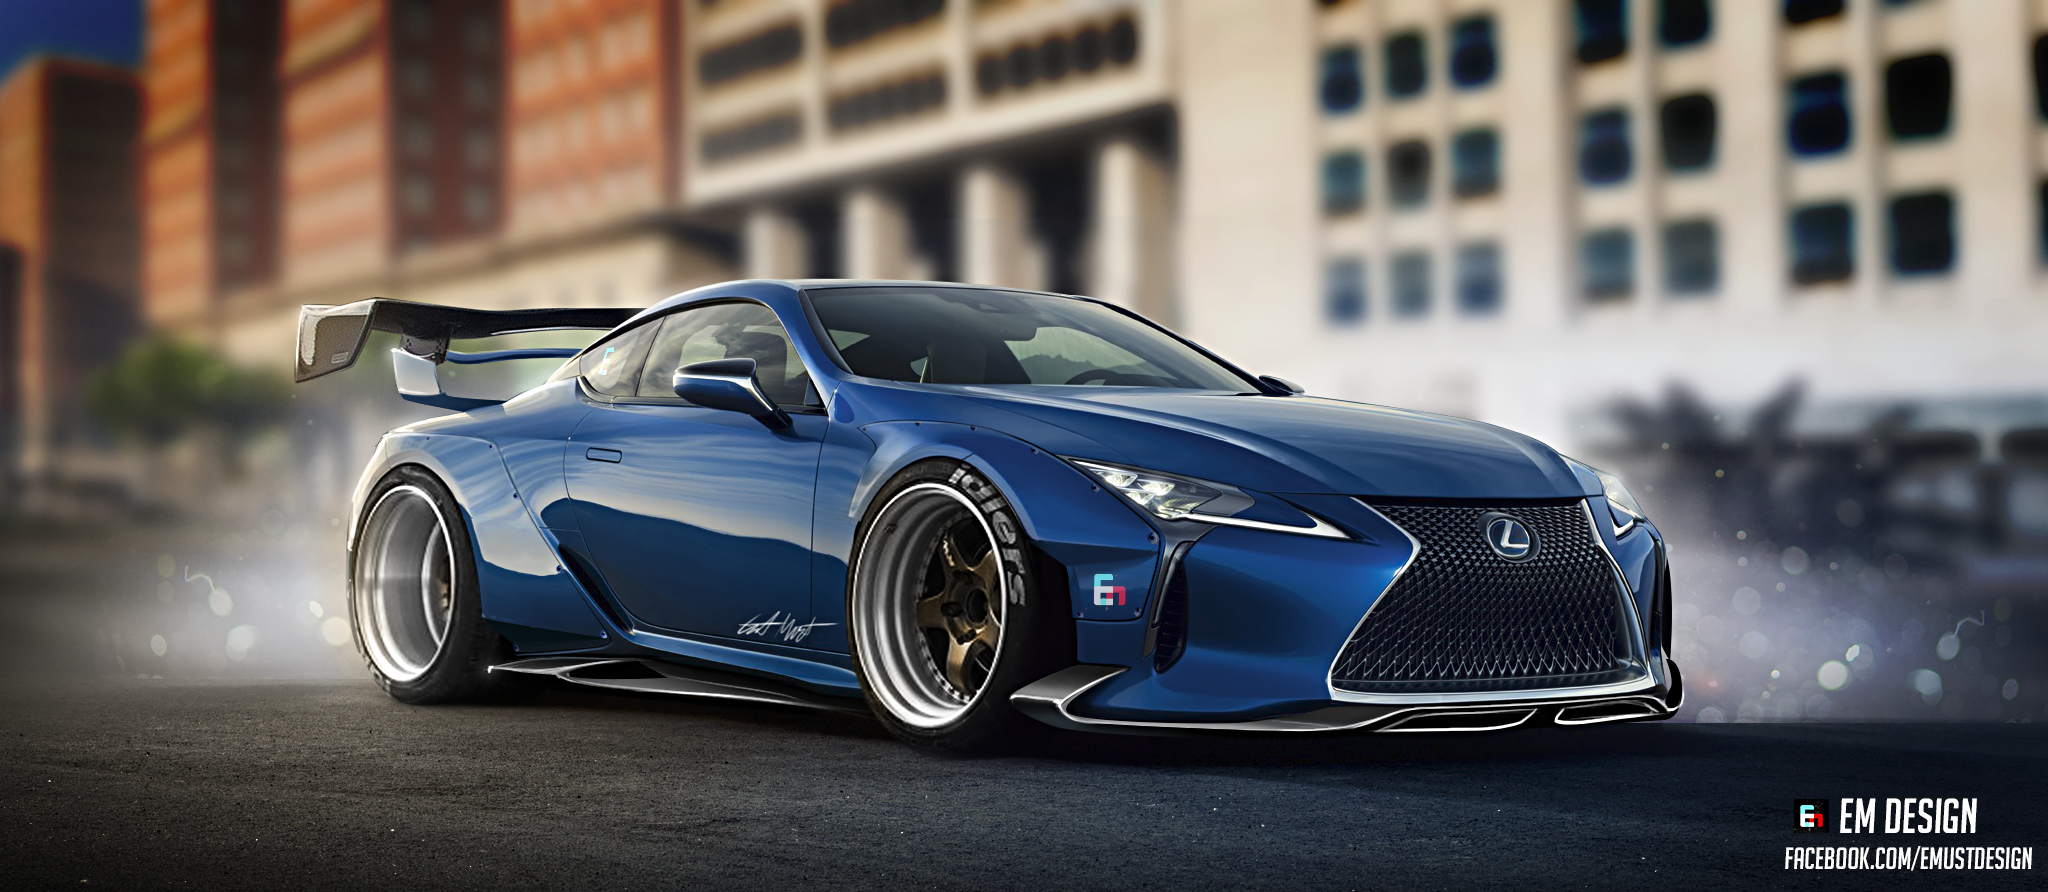 A Wide Body Kit on a Lexus LC 500